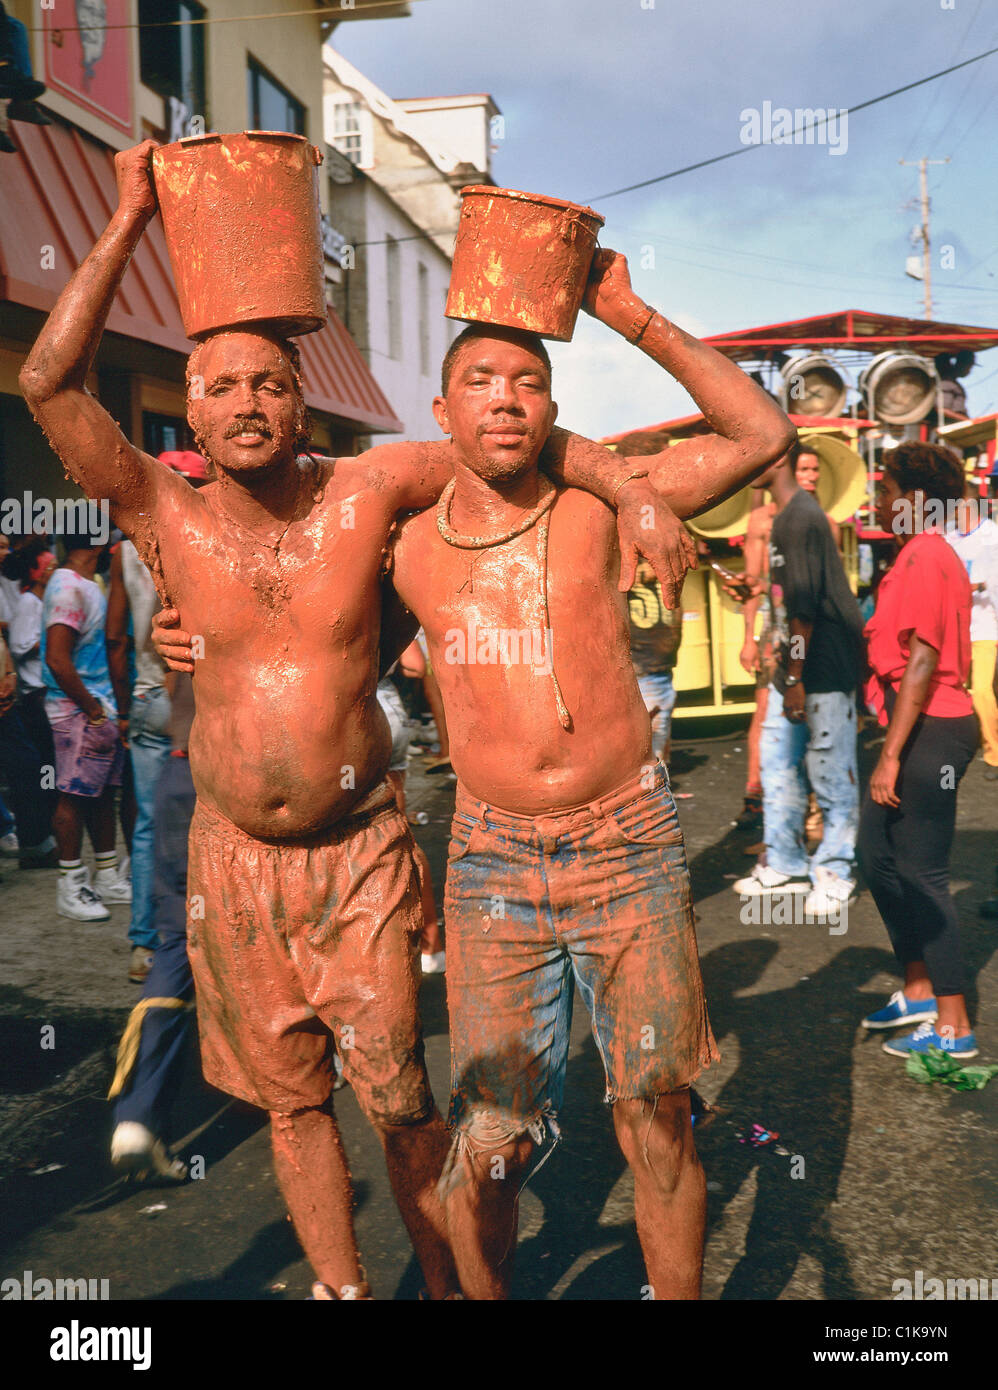 Grenada Island, St George's, Mardi Gras parade for carnival, The painted jab-jabs (local name) - Stock Image